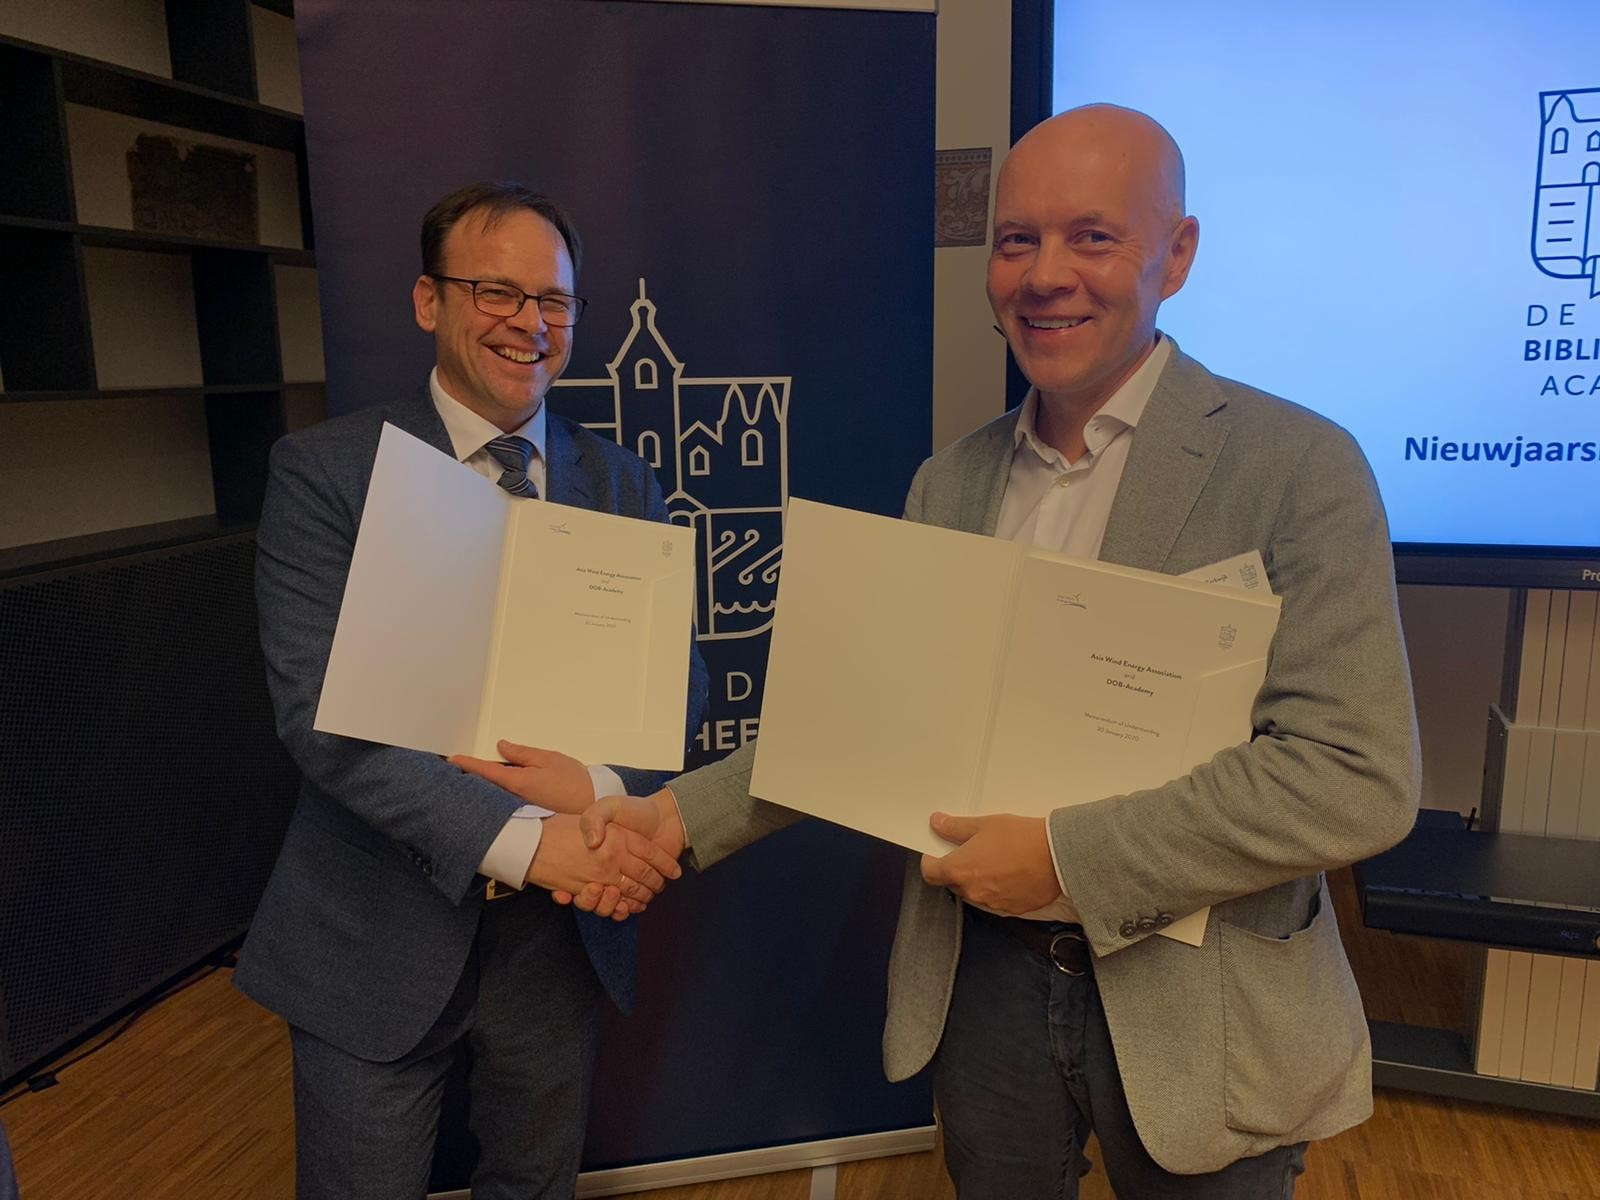 DOB-Academy and the Asia Wind Energy Association have signed a MOU to establish the Asia-Pacific Offshore Wind Academy in Singapore